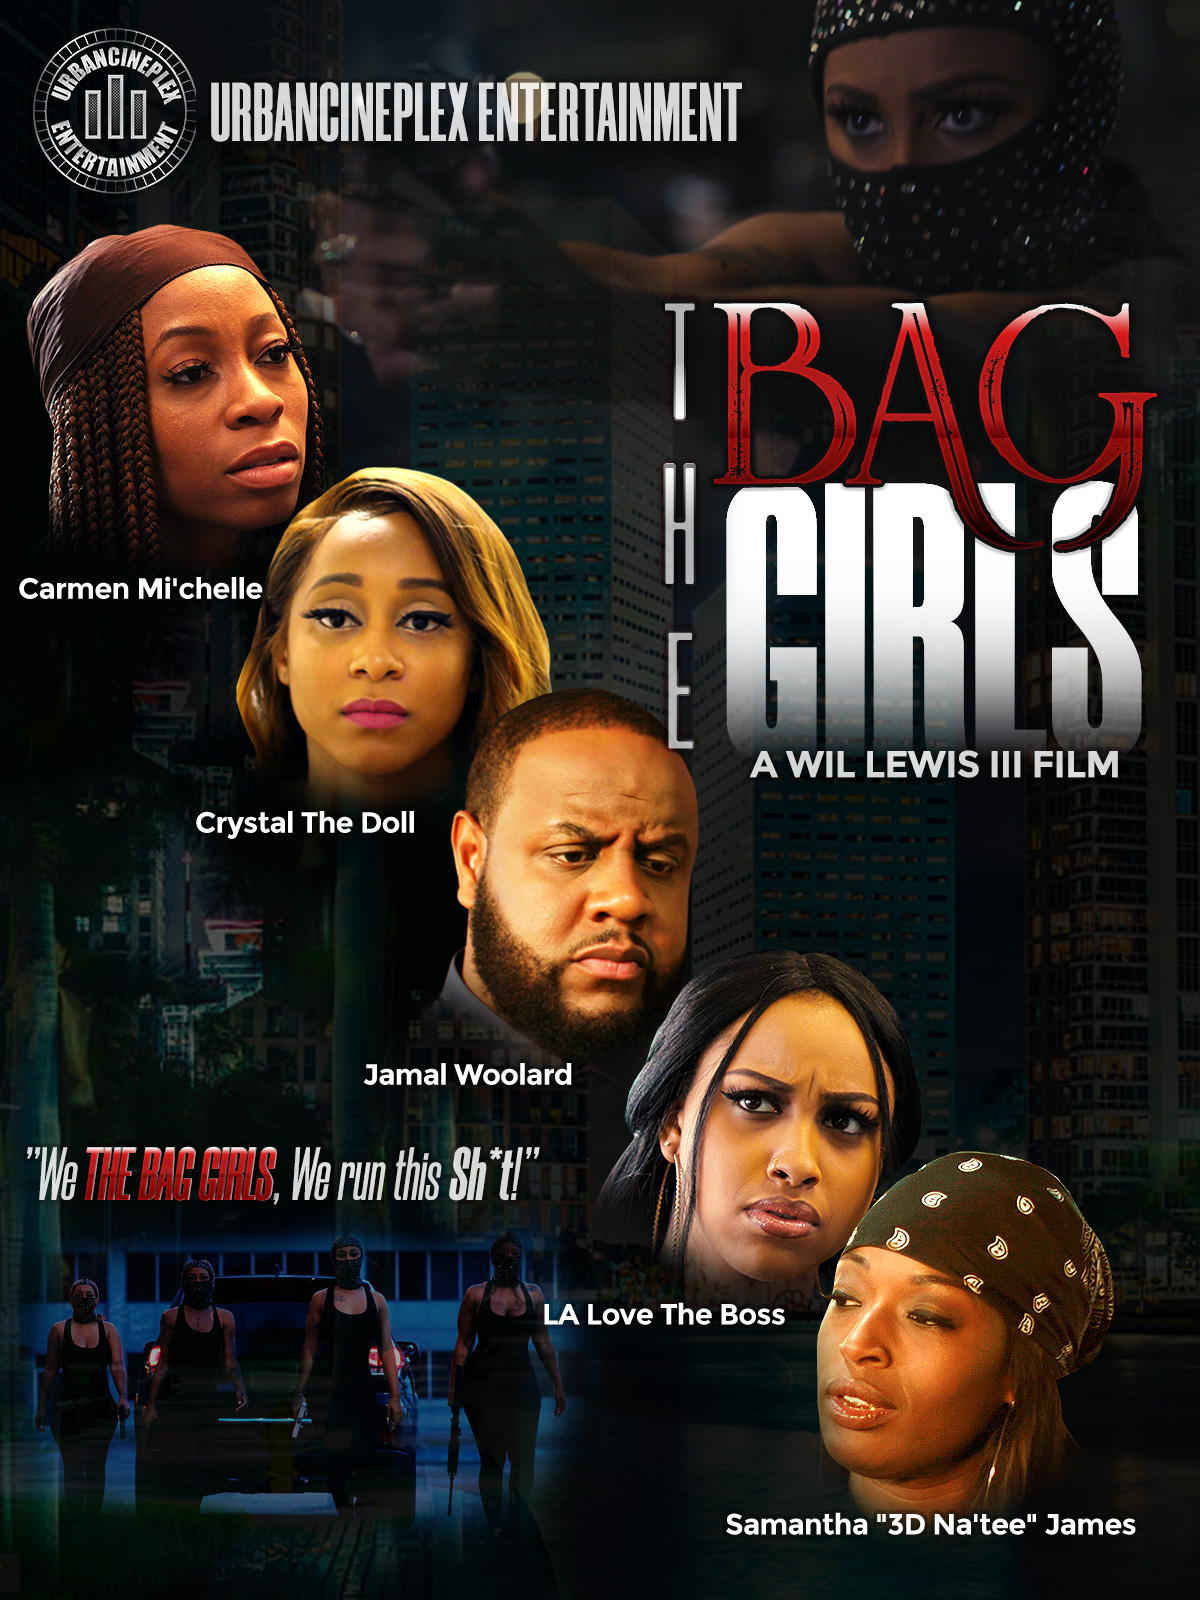 Download The Bag Girls (2020) WebRip 720p Full Movie [In English] With Hindi Subtitles Full Movie Online On 1xcinema.com